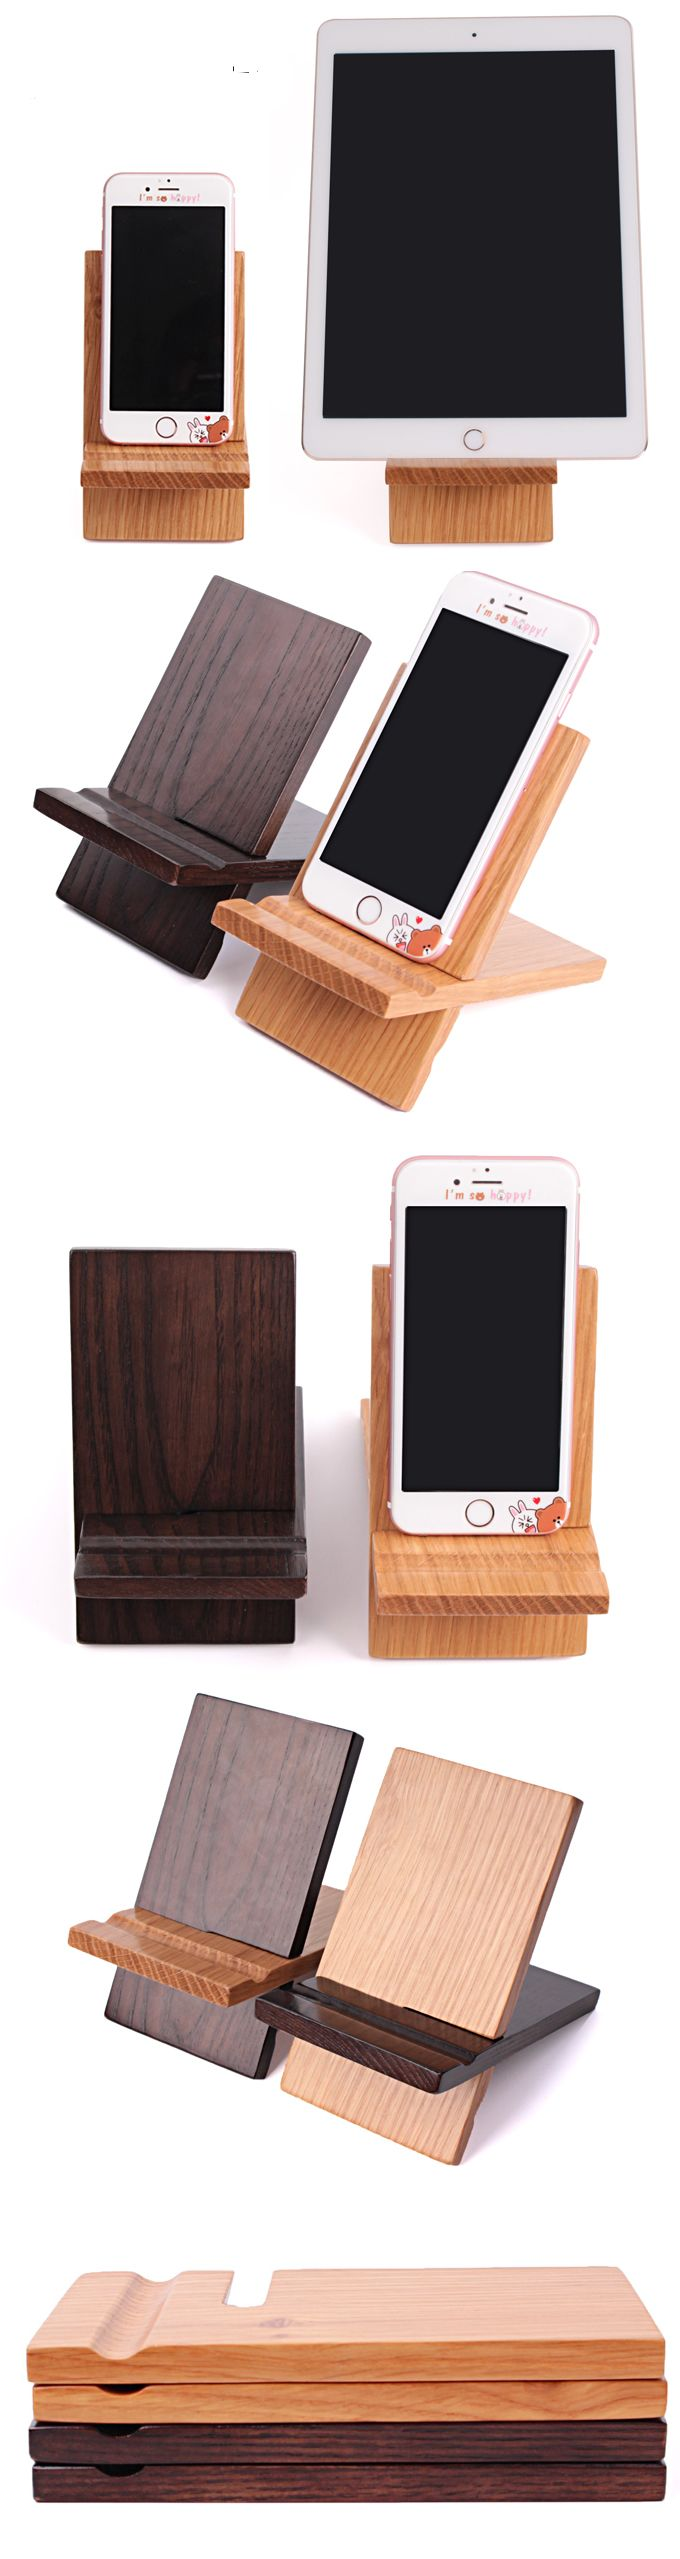 Portable Bamboo Wooden iPad iPhone Cell Phone Mobile Phone Stand ...